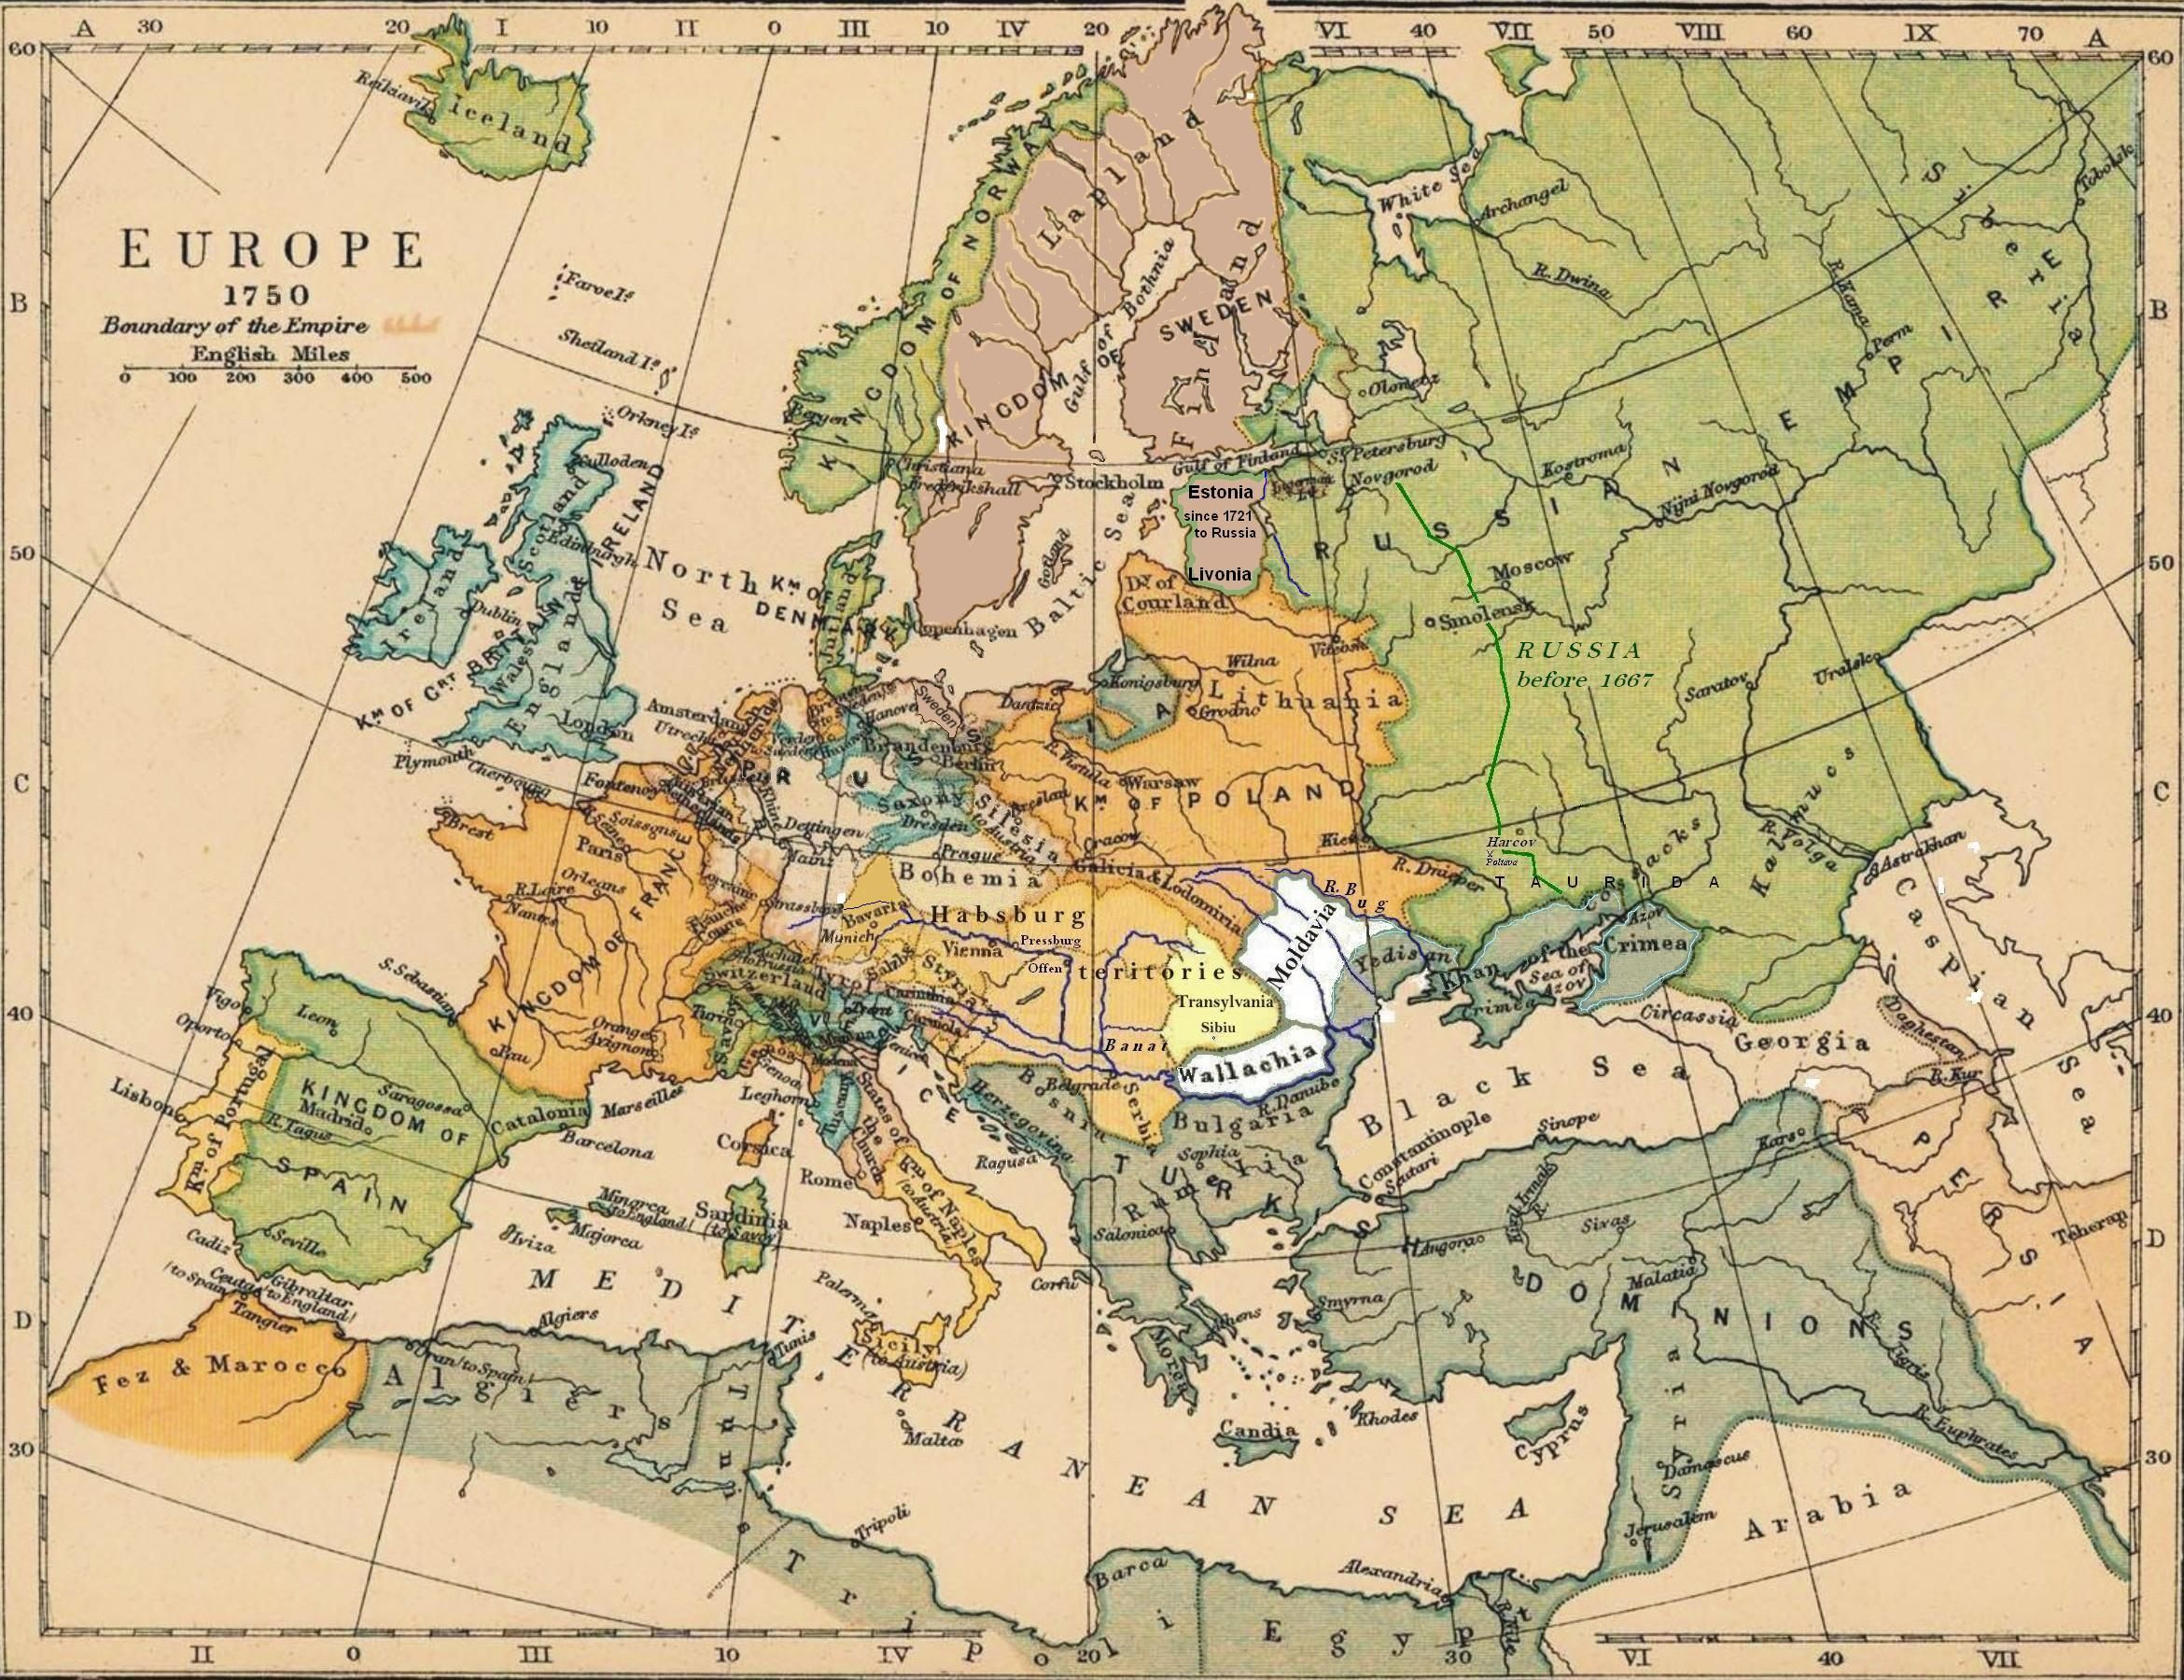 1750 advertisement historical map of europe at 1750